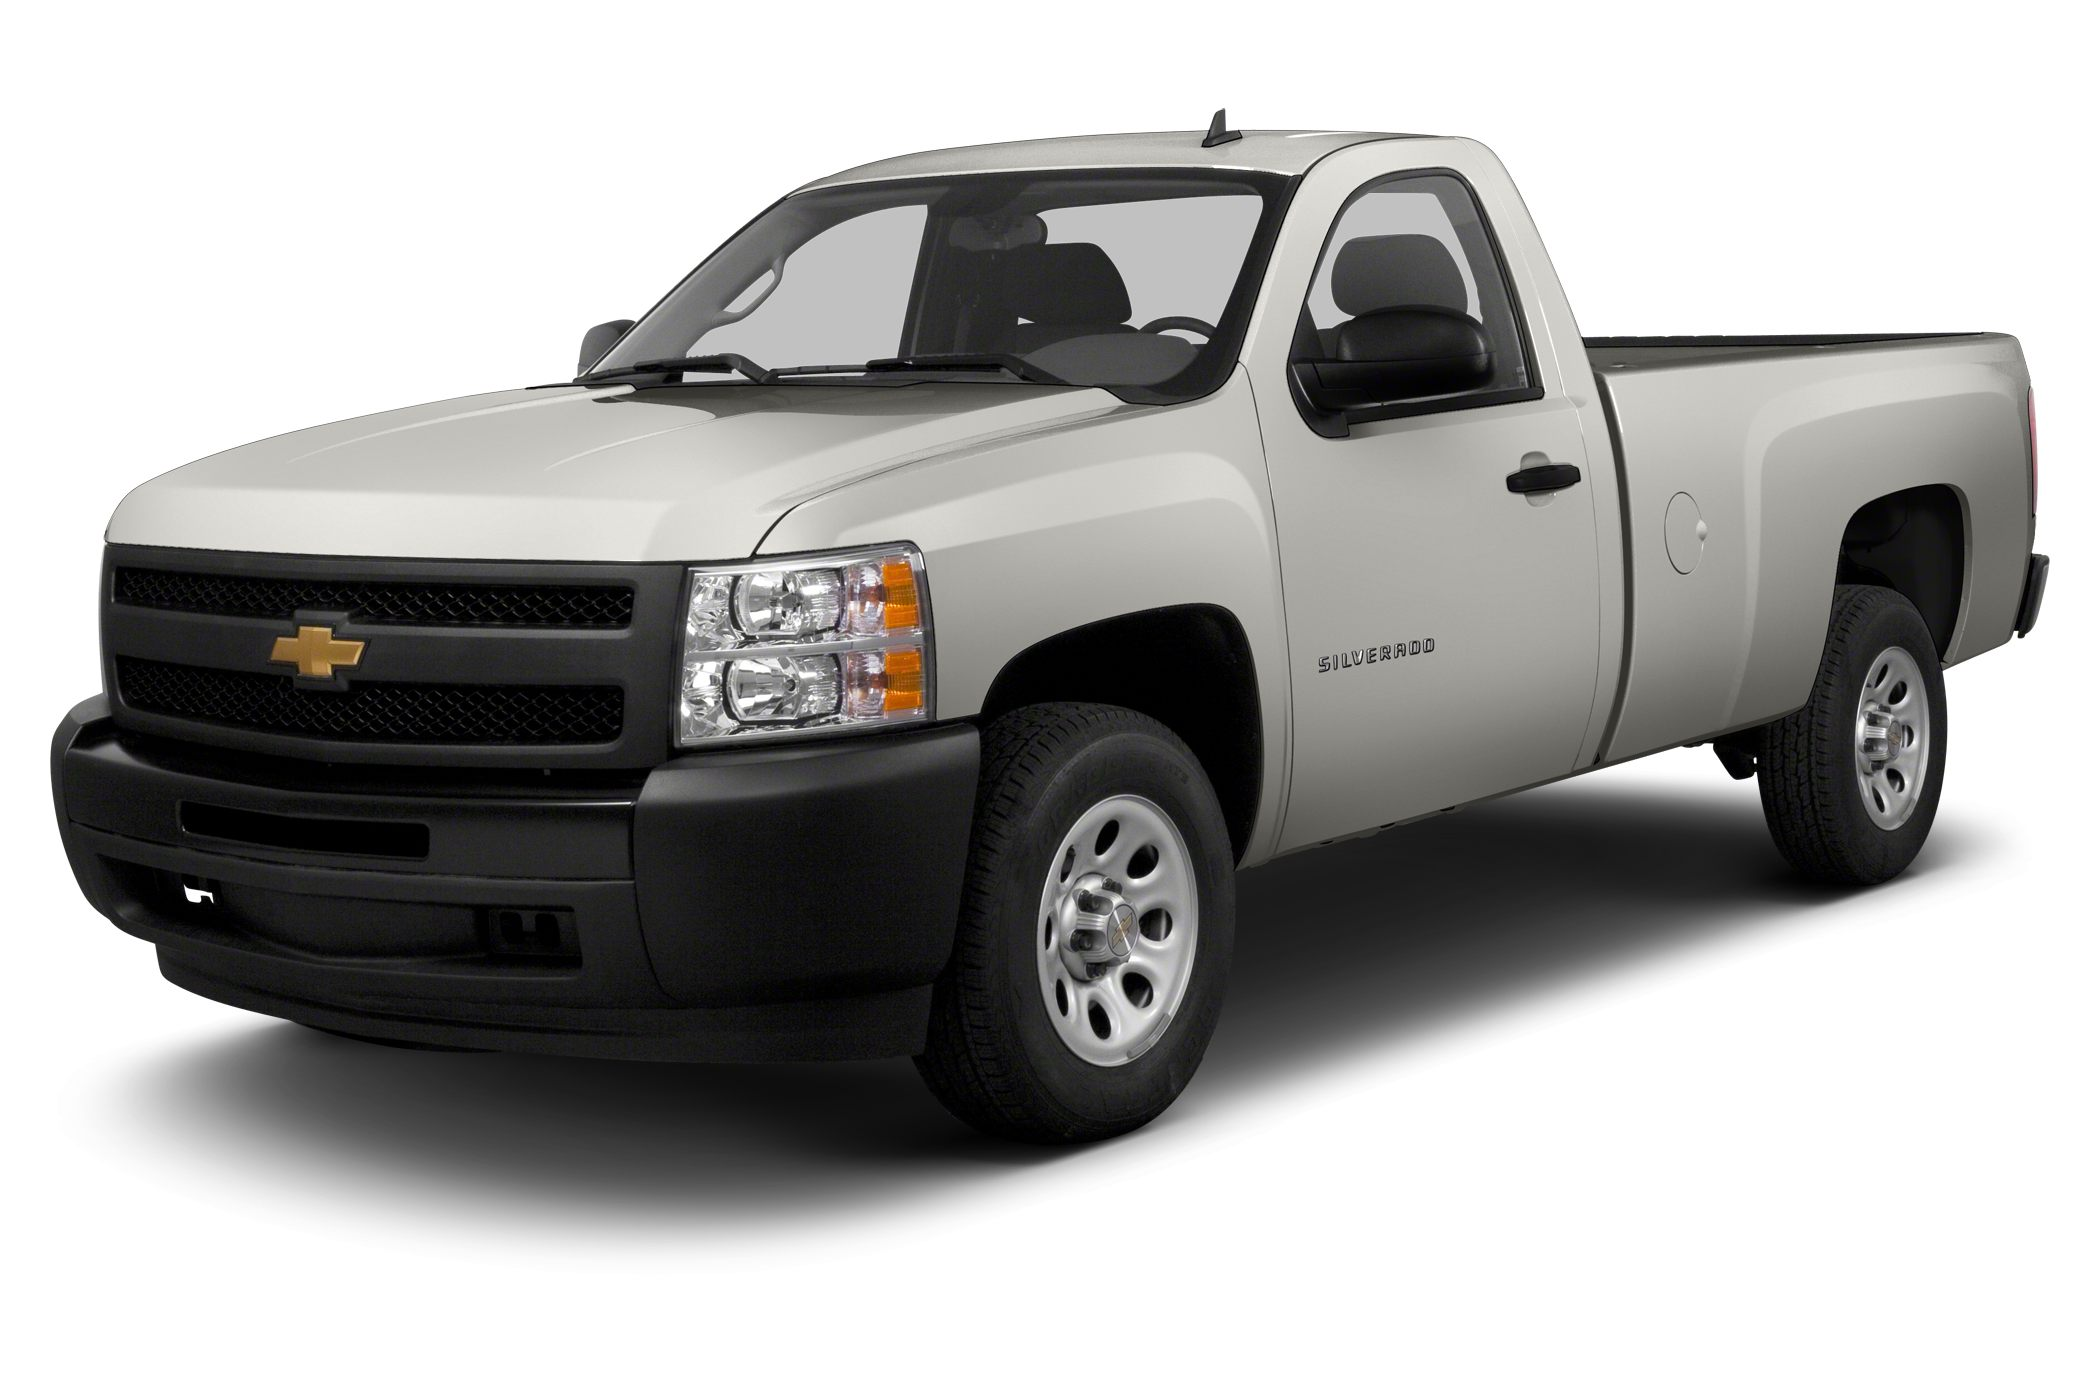 2013 Chevrolet Silverado 1500 LT Extended Cab Pickup for sale in Augusta for $24,220 with 53,328 miles